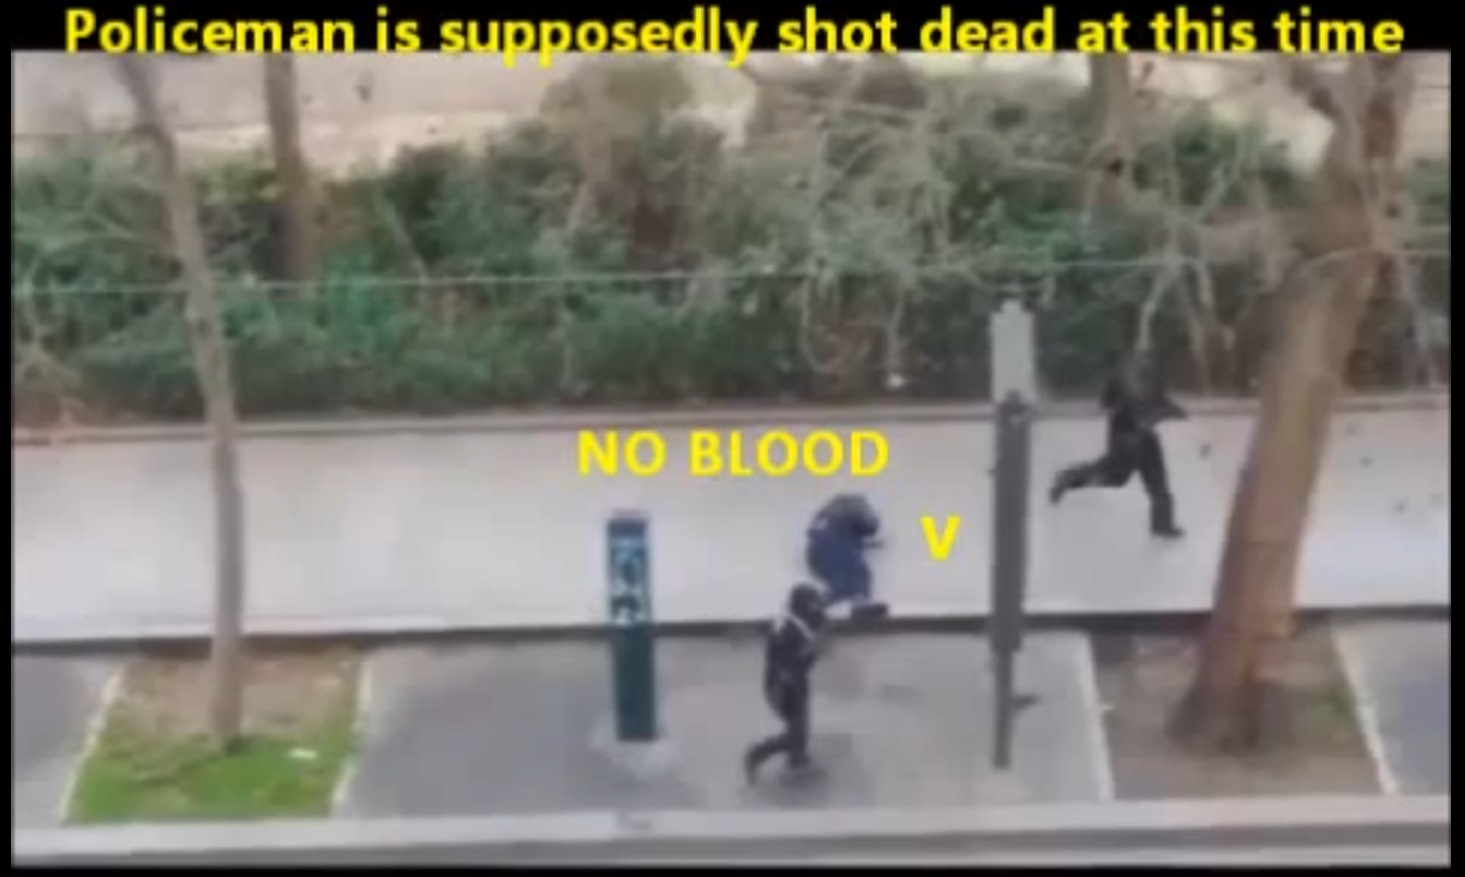 Huge Breaking News out of France! Fake blood added AFTER the Policeman was supposedly shot in Paris. Undeniable photo proof of the #charliehebdo shooting being a hoax. No blood there as they...